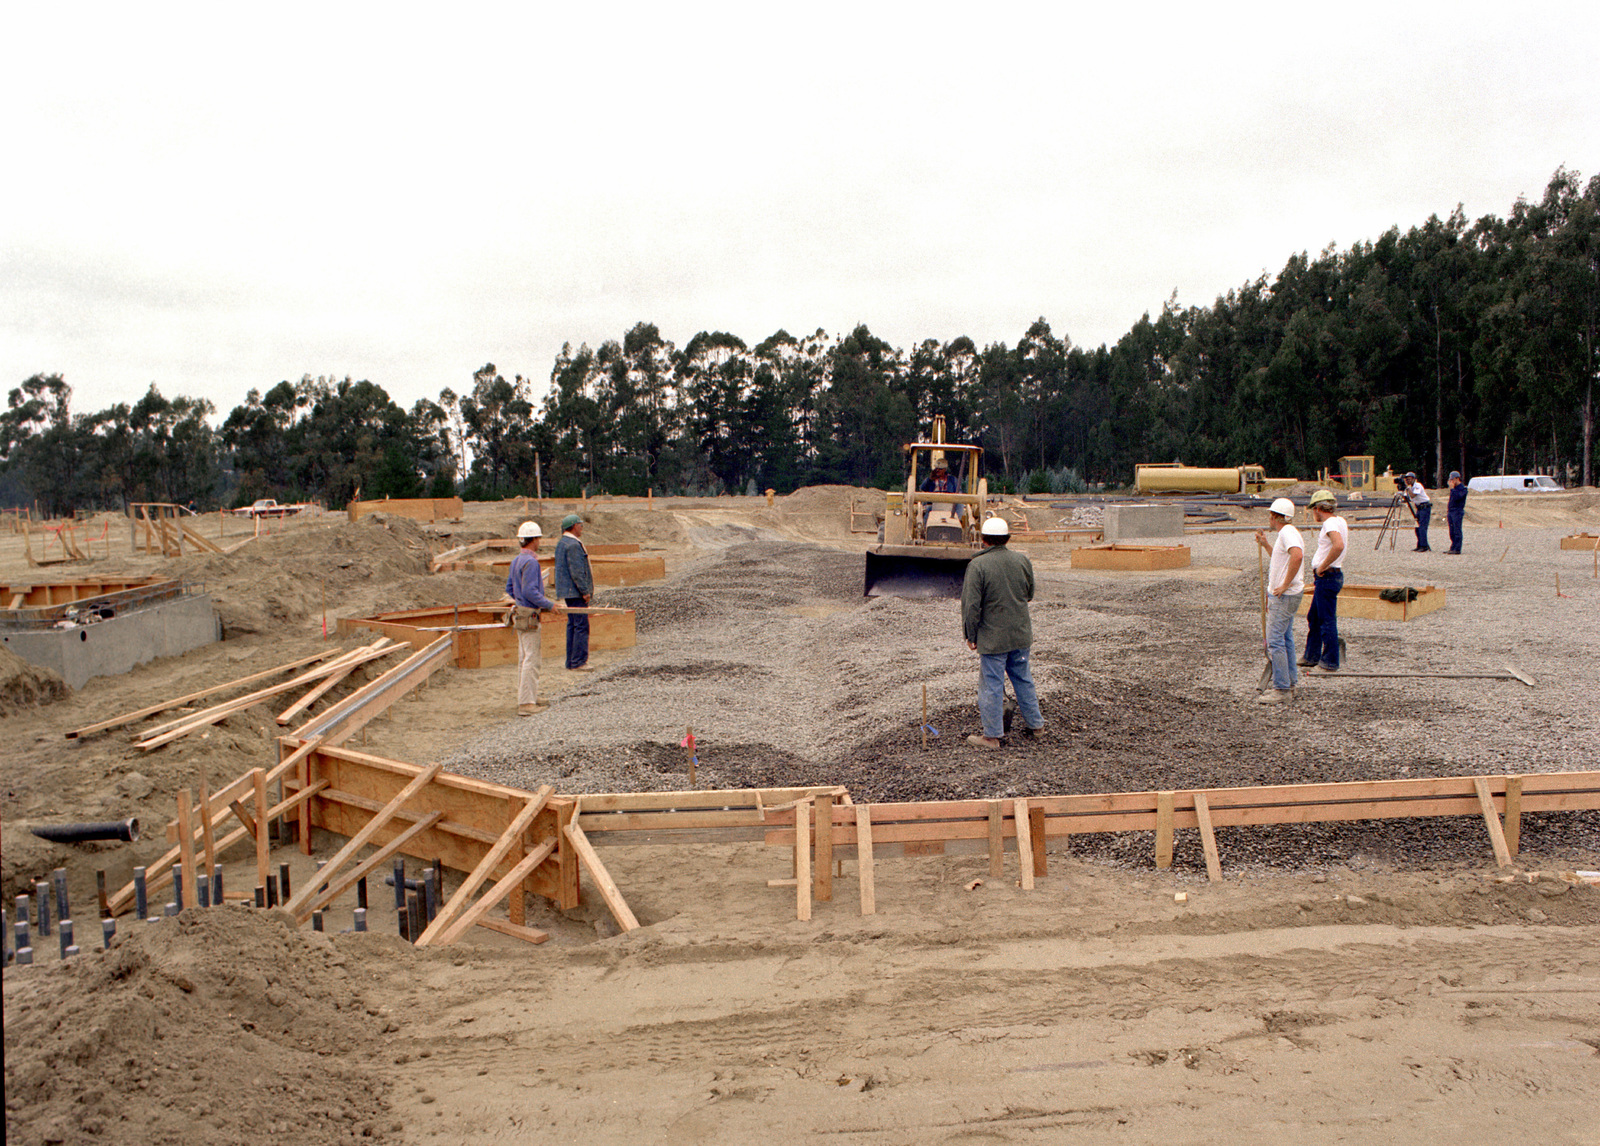 Builders place soil and plastic down as a vapor barrier for the floor of the MX integrated test facility (ITF) during the construction of the MX facilities